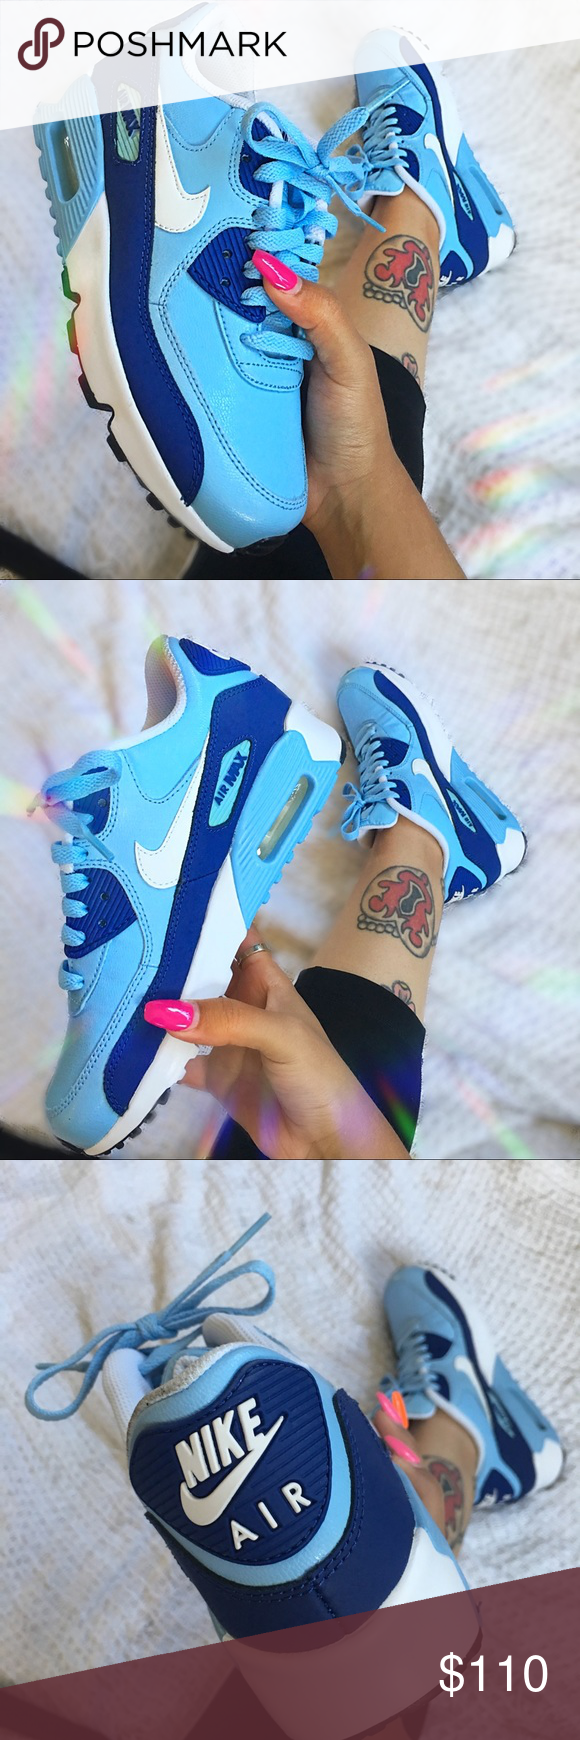 Nike Air Max 90 BluecapRoyal Blue Gorgeous Air Max 90